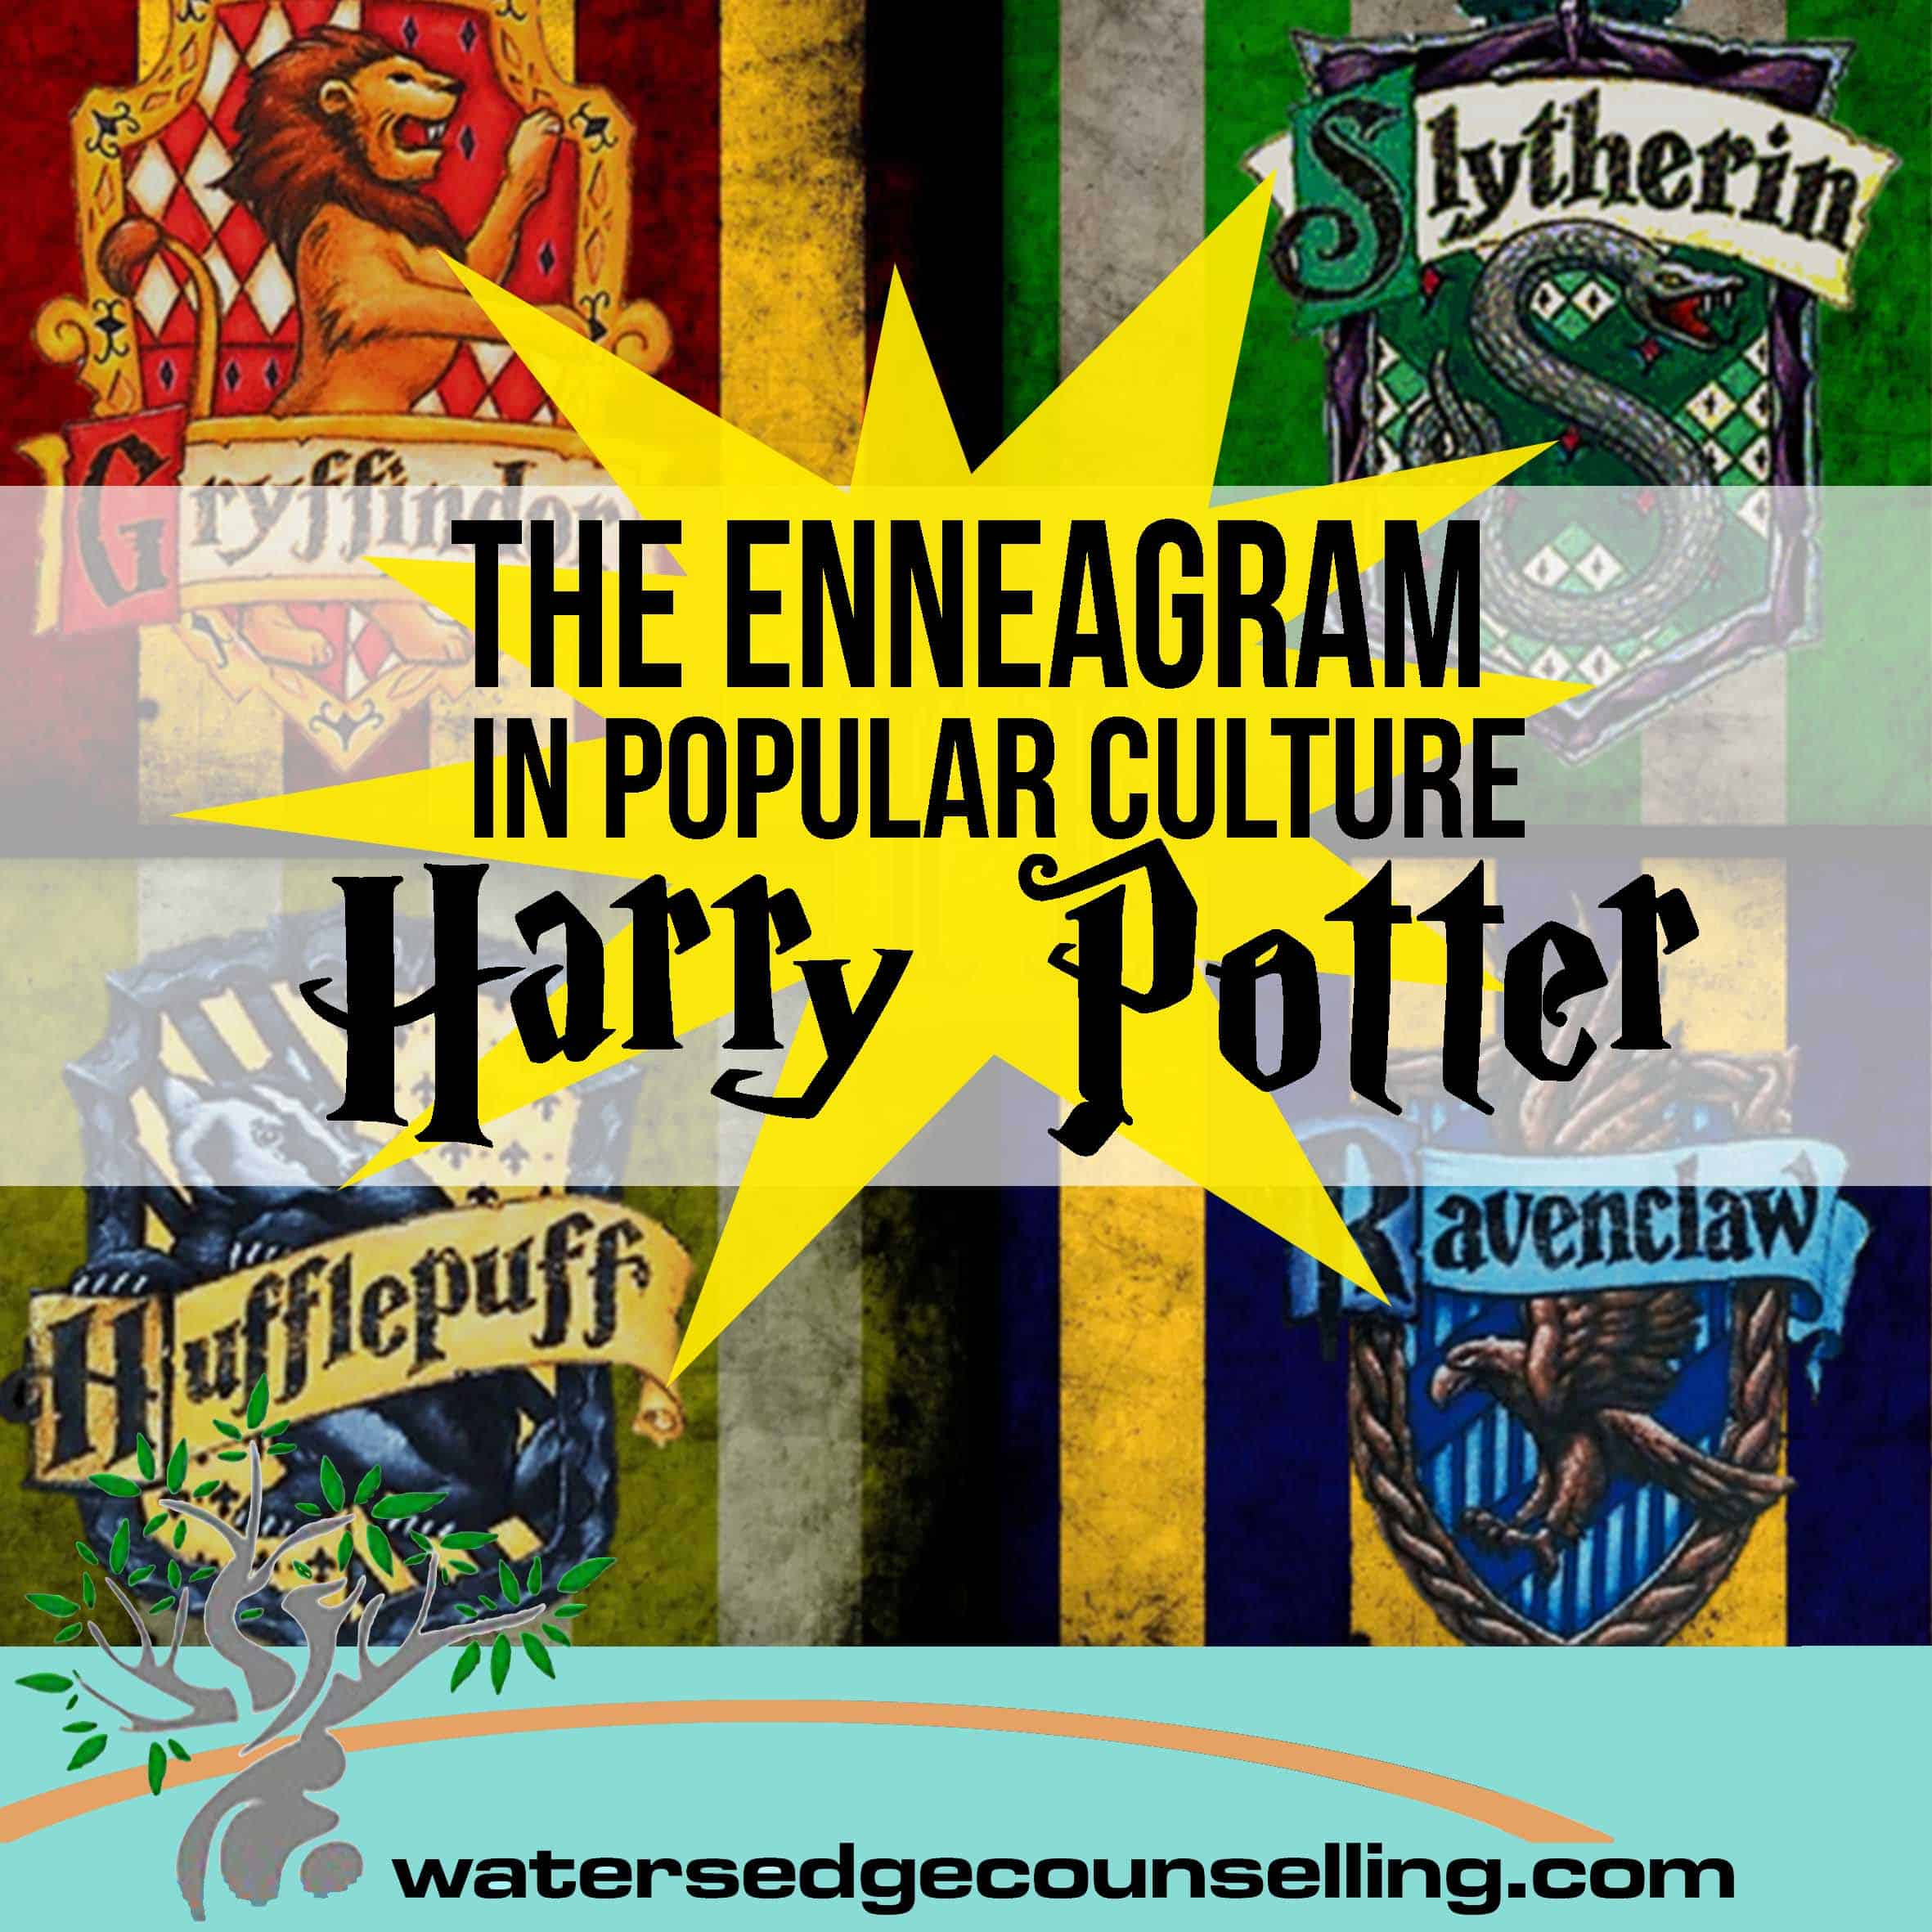 The Enneagram In Popular Culture: Harry Potter